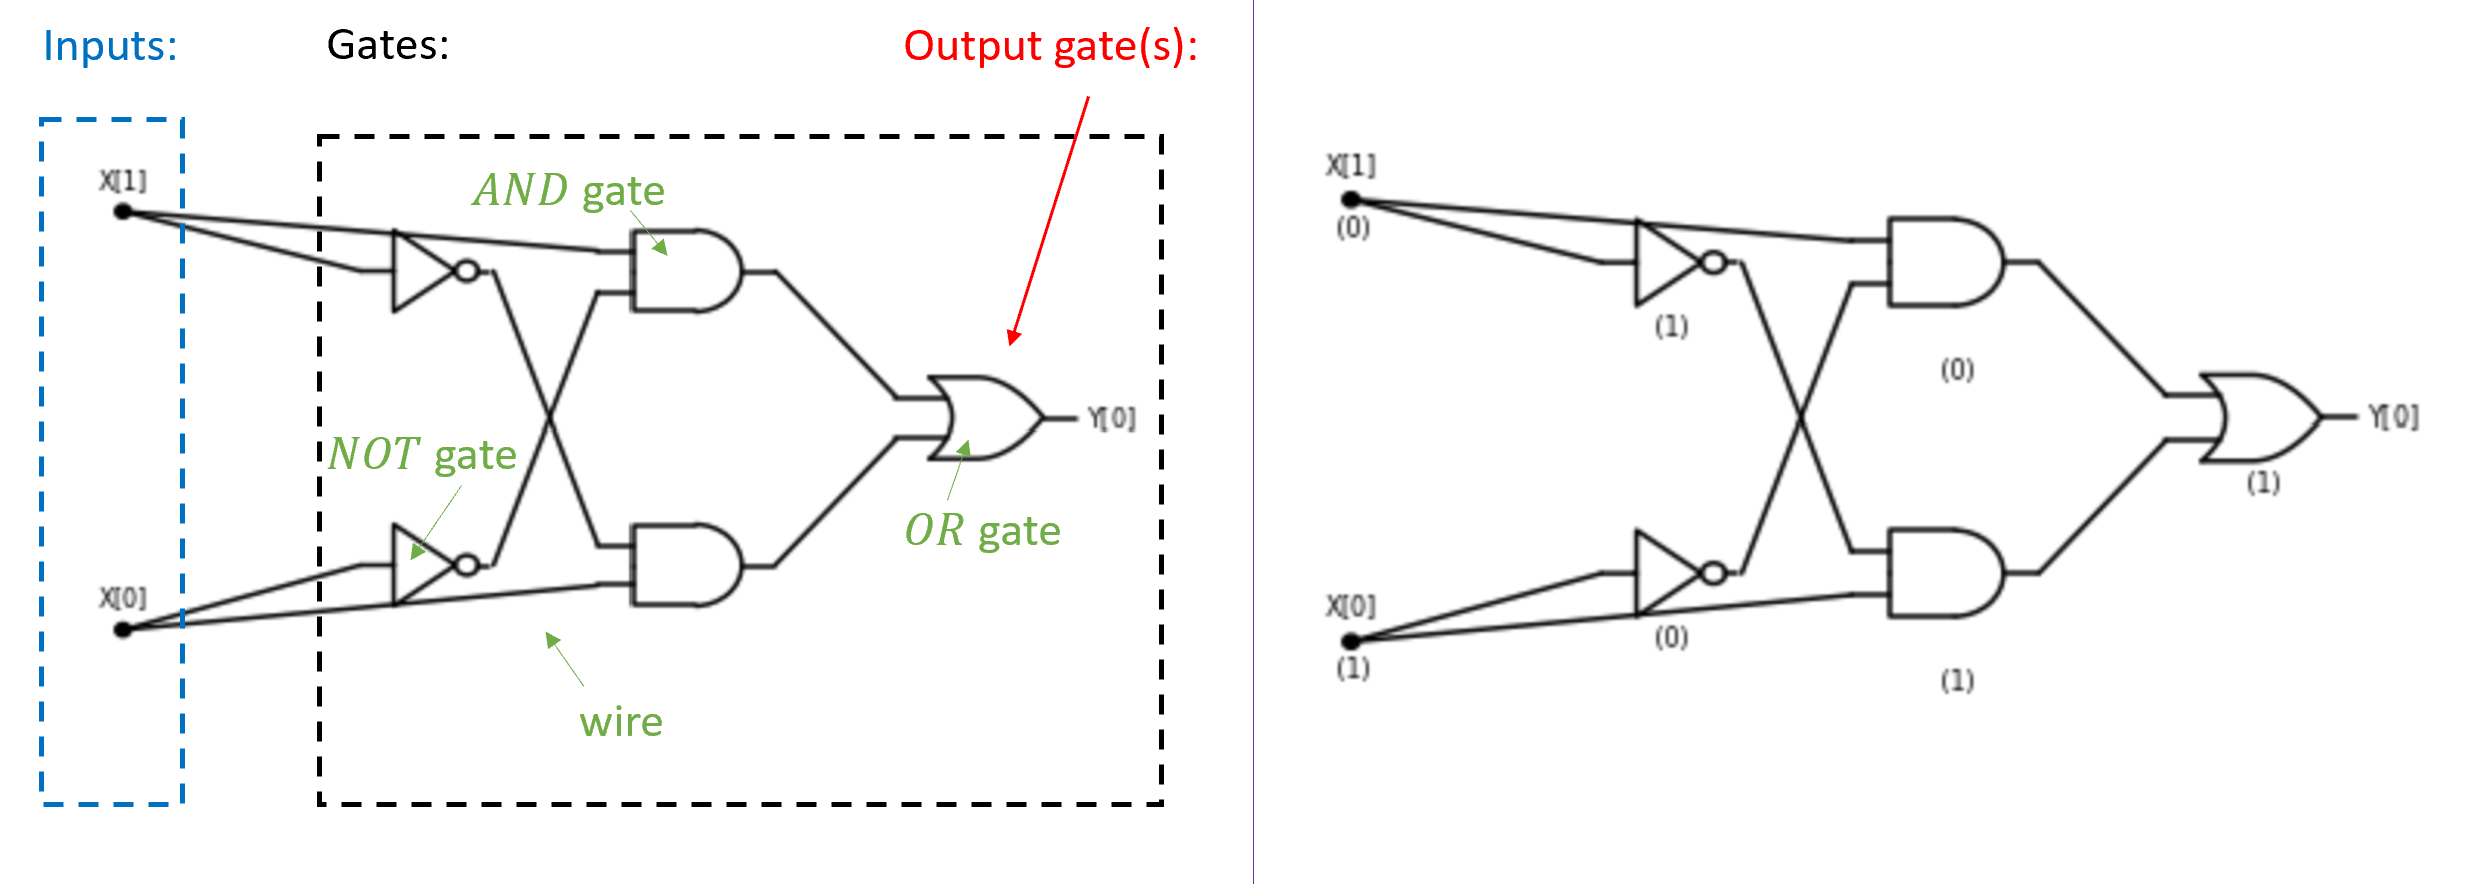 3.9: A Boolean Circuit consists of gates that are are connected by wires to one another and the inputs. The left side depicts a circuit with 2 inputs and 5 gates, one of which is designated the output gate. The right side depicts the evaluation of this circuit on the input x\in \{0,1\}^2 with x_0=1 and x_1=0. The value of every gate is obtained by applying the corresponding function (\ensuremath{\mathit{AND}}, \ensuremath{\mathit{OR}}, or \ensuremath{\mathit{NOT}}) to values on the wire(s) that enter it. The output of the circuit on a given input is the value of the output gate(s). In this case, the circuit computes the \ensuremath{\mathit{XOR}} function and hence it outputs 1 on the input 10.